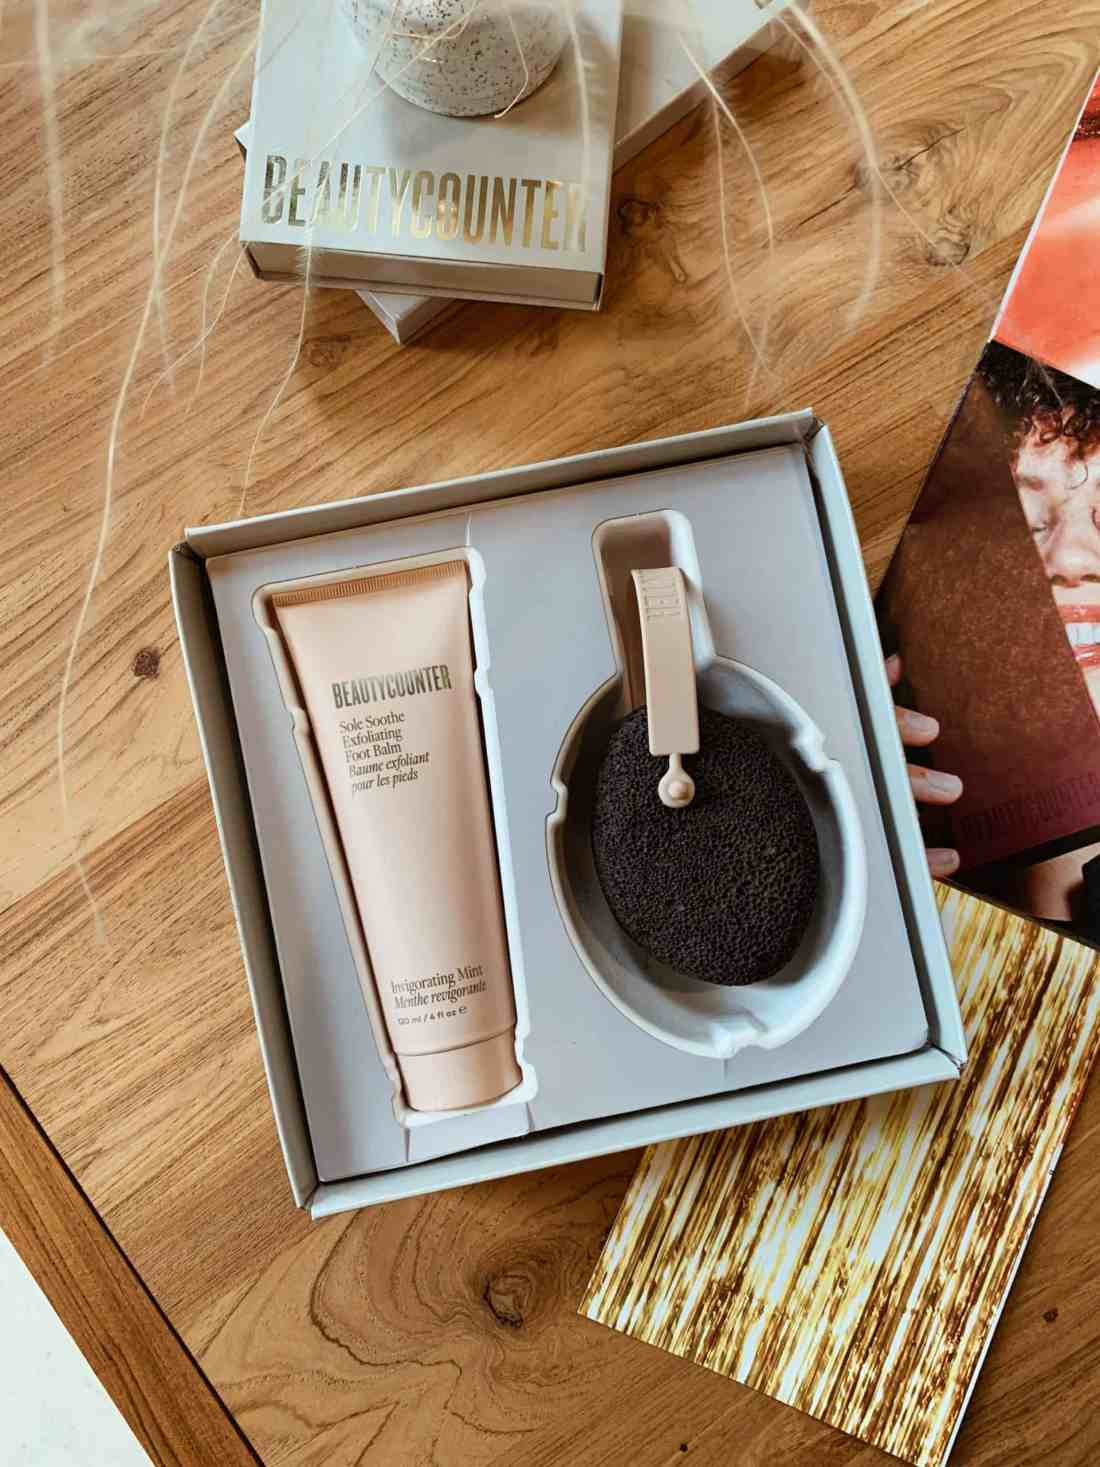 2021 Beautycounter Holiday Collection Review: Solemates Exfoliating Duo